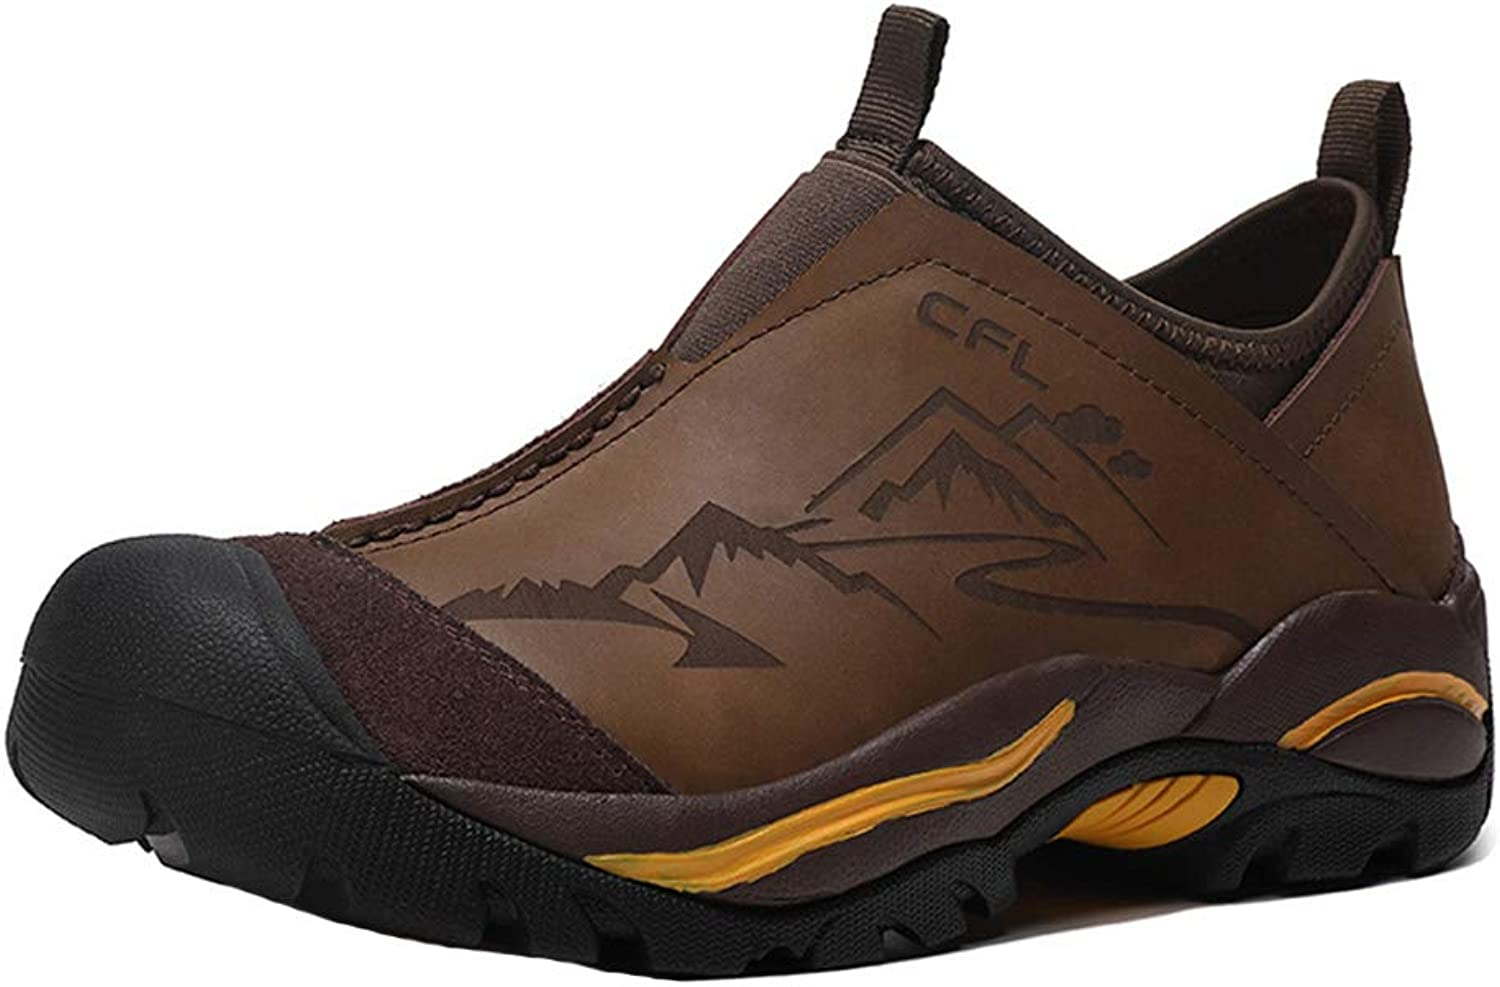 Men's Walking shoes, Hiking shoes Lightweight Trainers Waterproof Low-Top Non Slip Breathable Safety for Outdoor Trekking Travelling Climbing,Brown,44